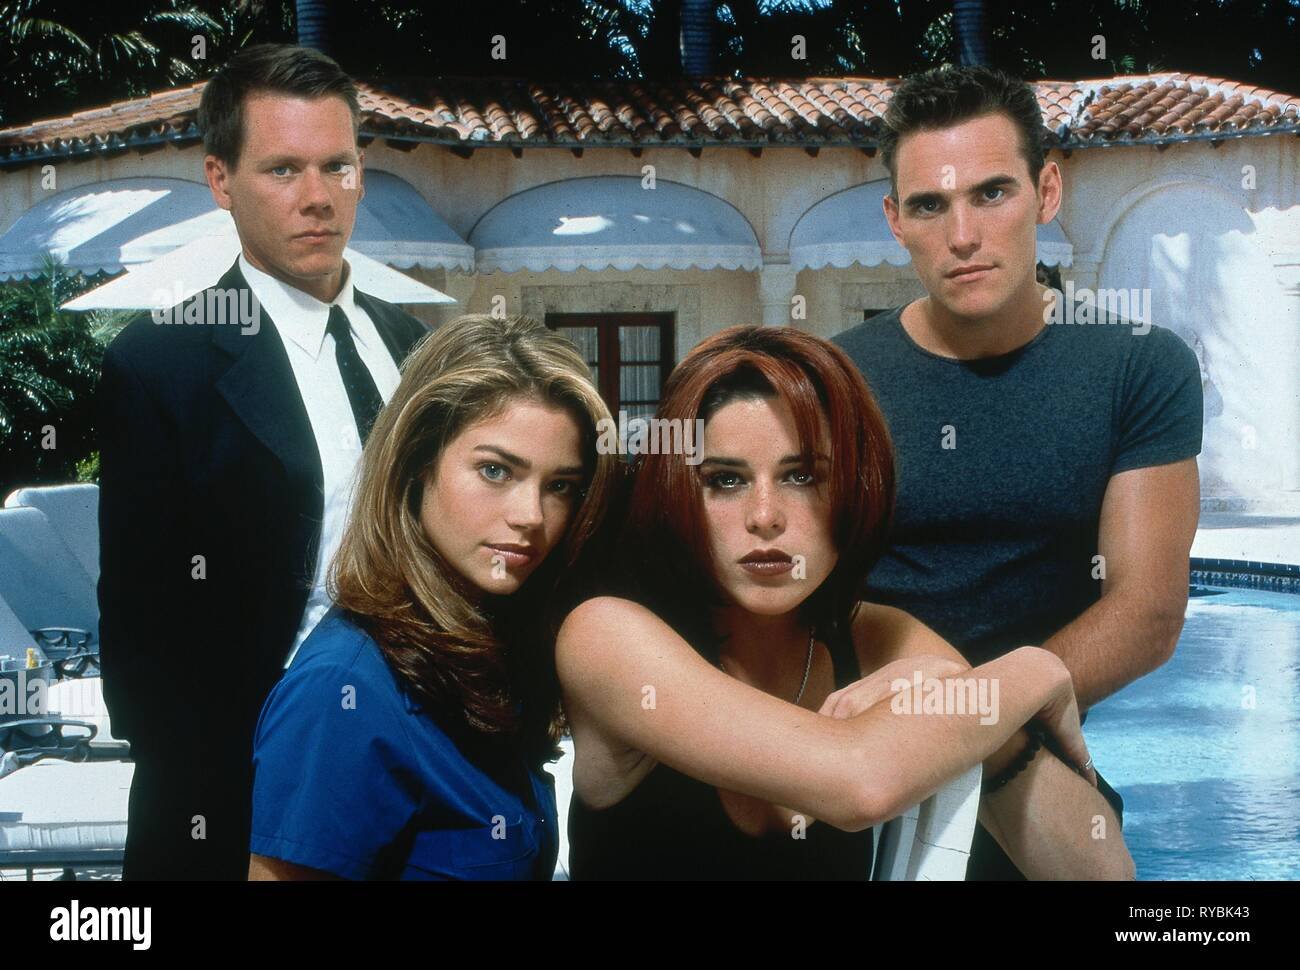 KEVIN BACON, DENISE RICHARDS, NEVE CAMPBELL,MATT DILLON, WILD THINGS, 1998 - Stock Image